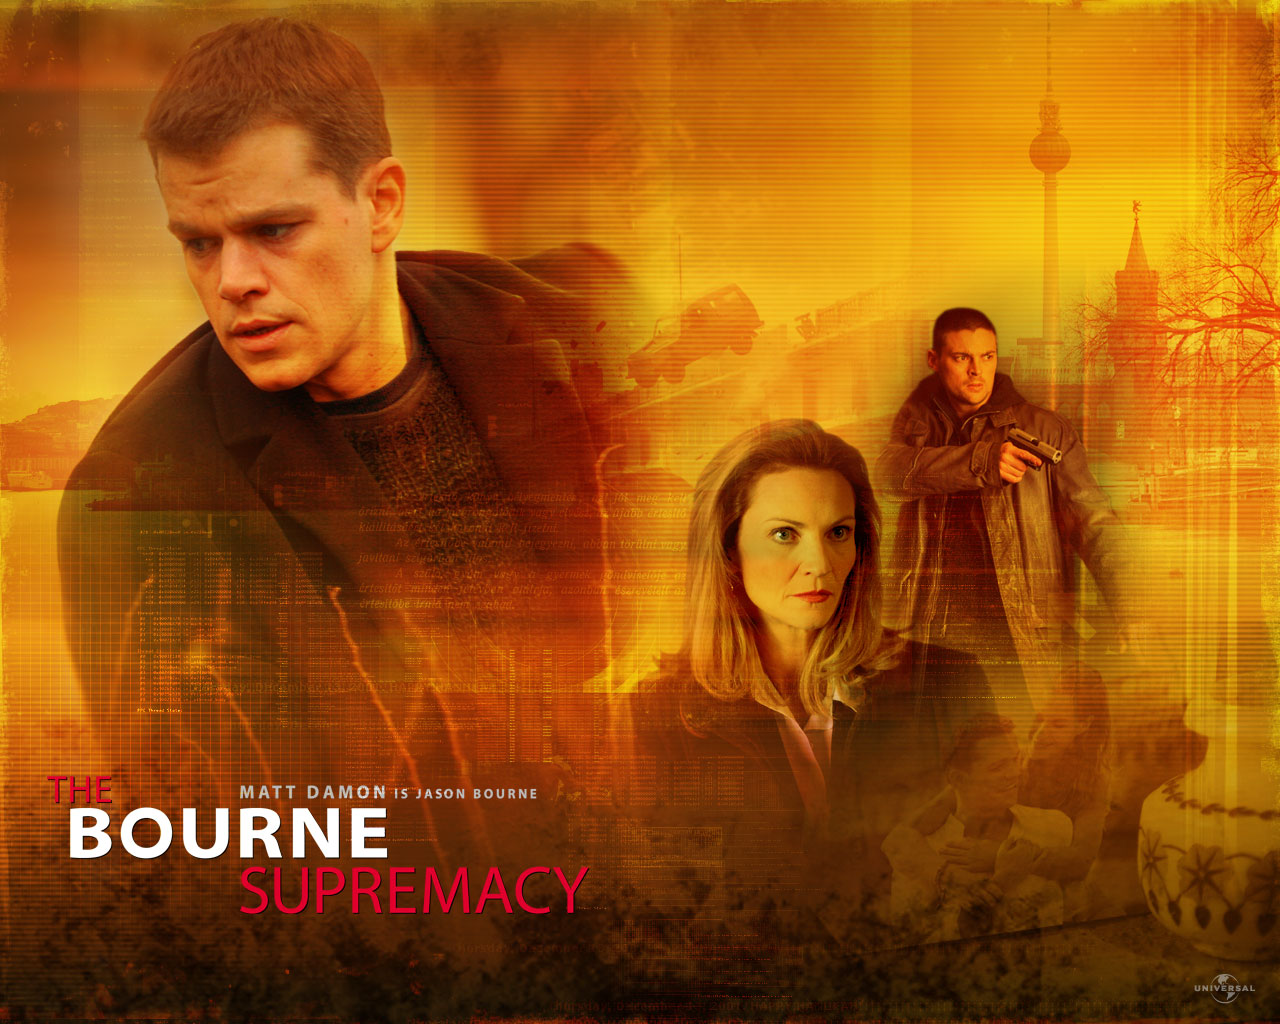 b6c967ef1 REVIEW: The Bourne Supremacy UHD 4K Blu-Ray – ManlyMovie